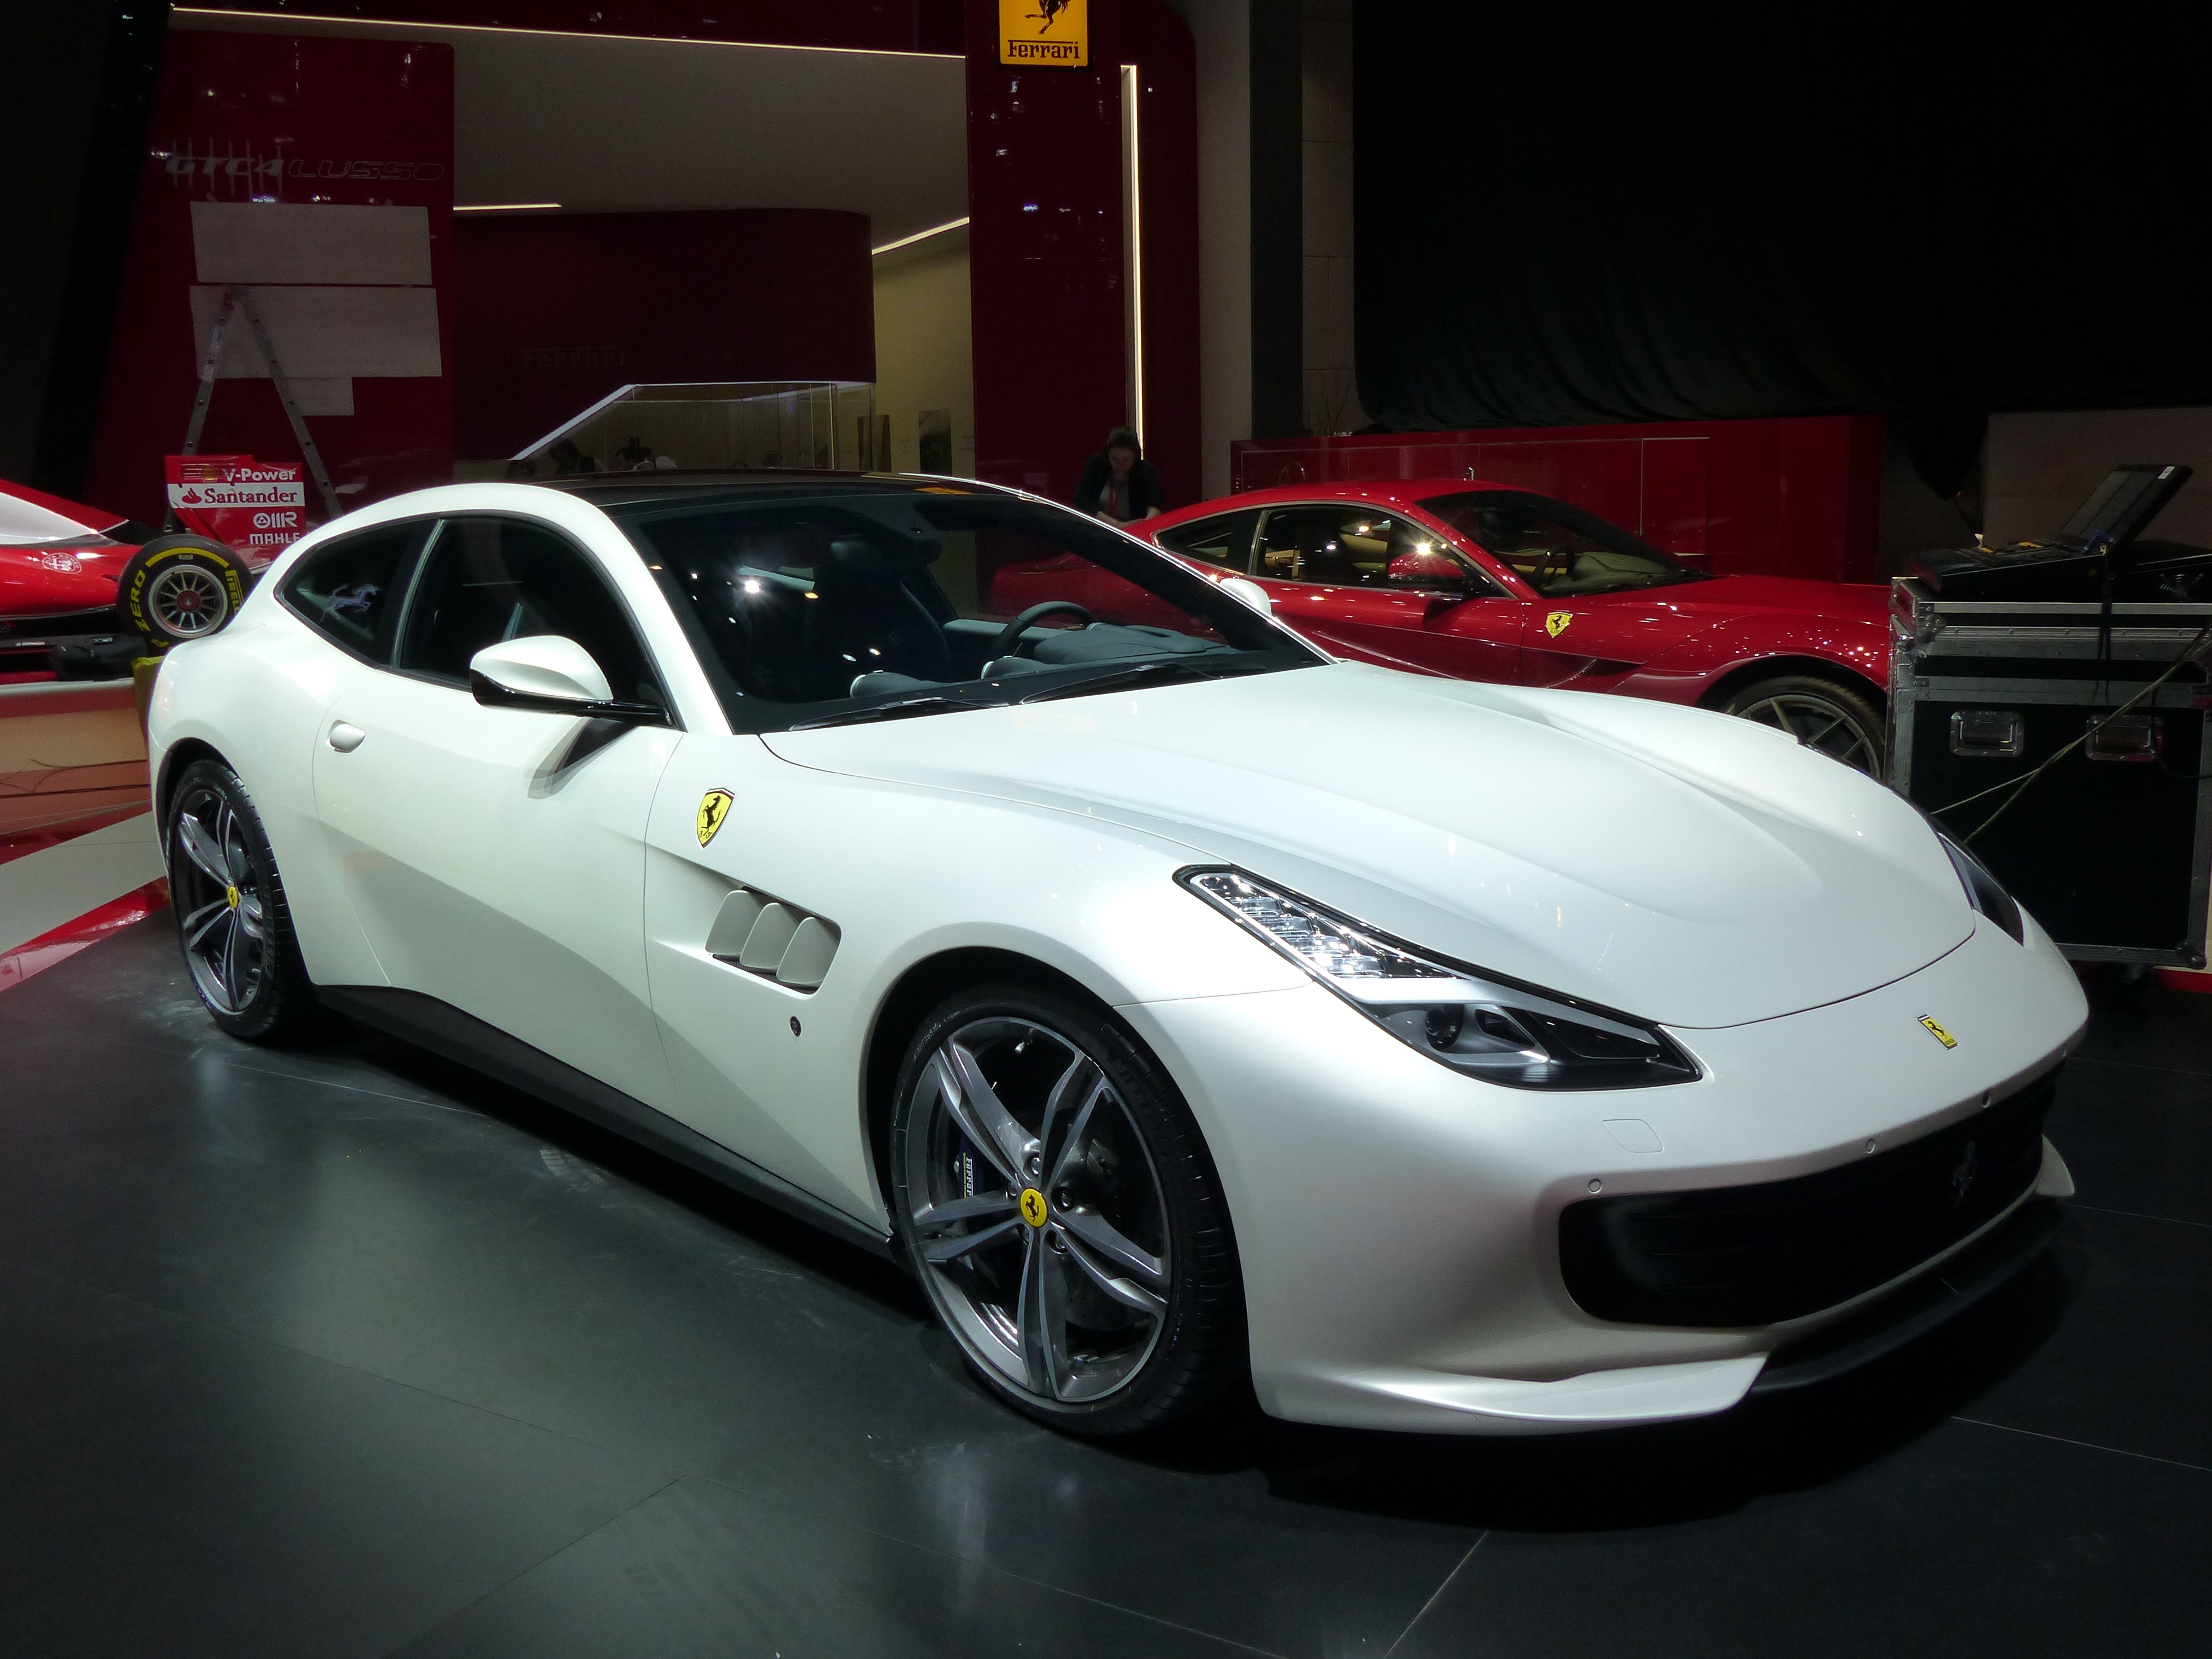 ferrari gtc4 lusso la nouvelle familiale de maranello vid o en direct du salon de gen ve. Black Bedroom Furniture Sets. Home Design Ideas